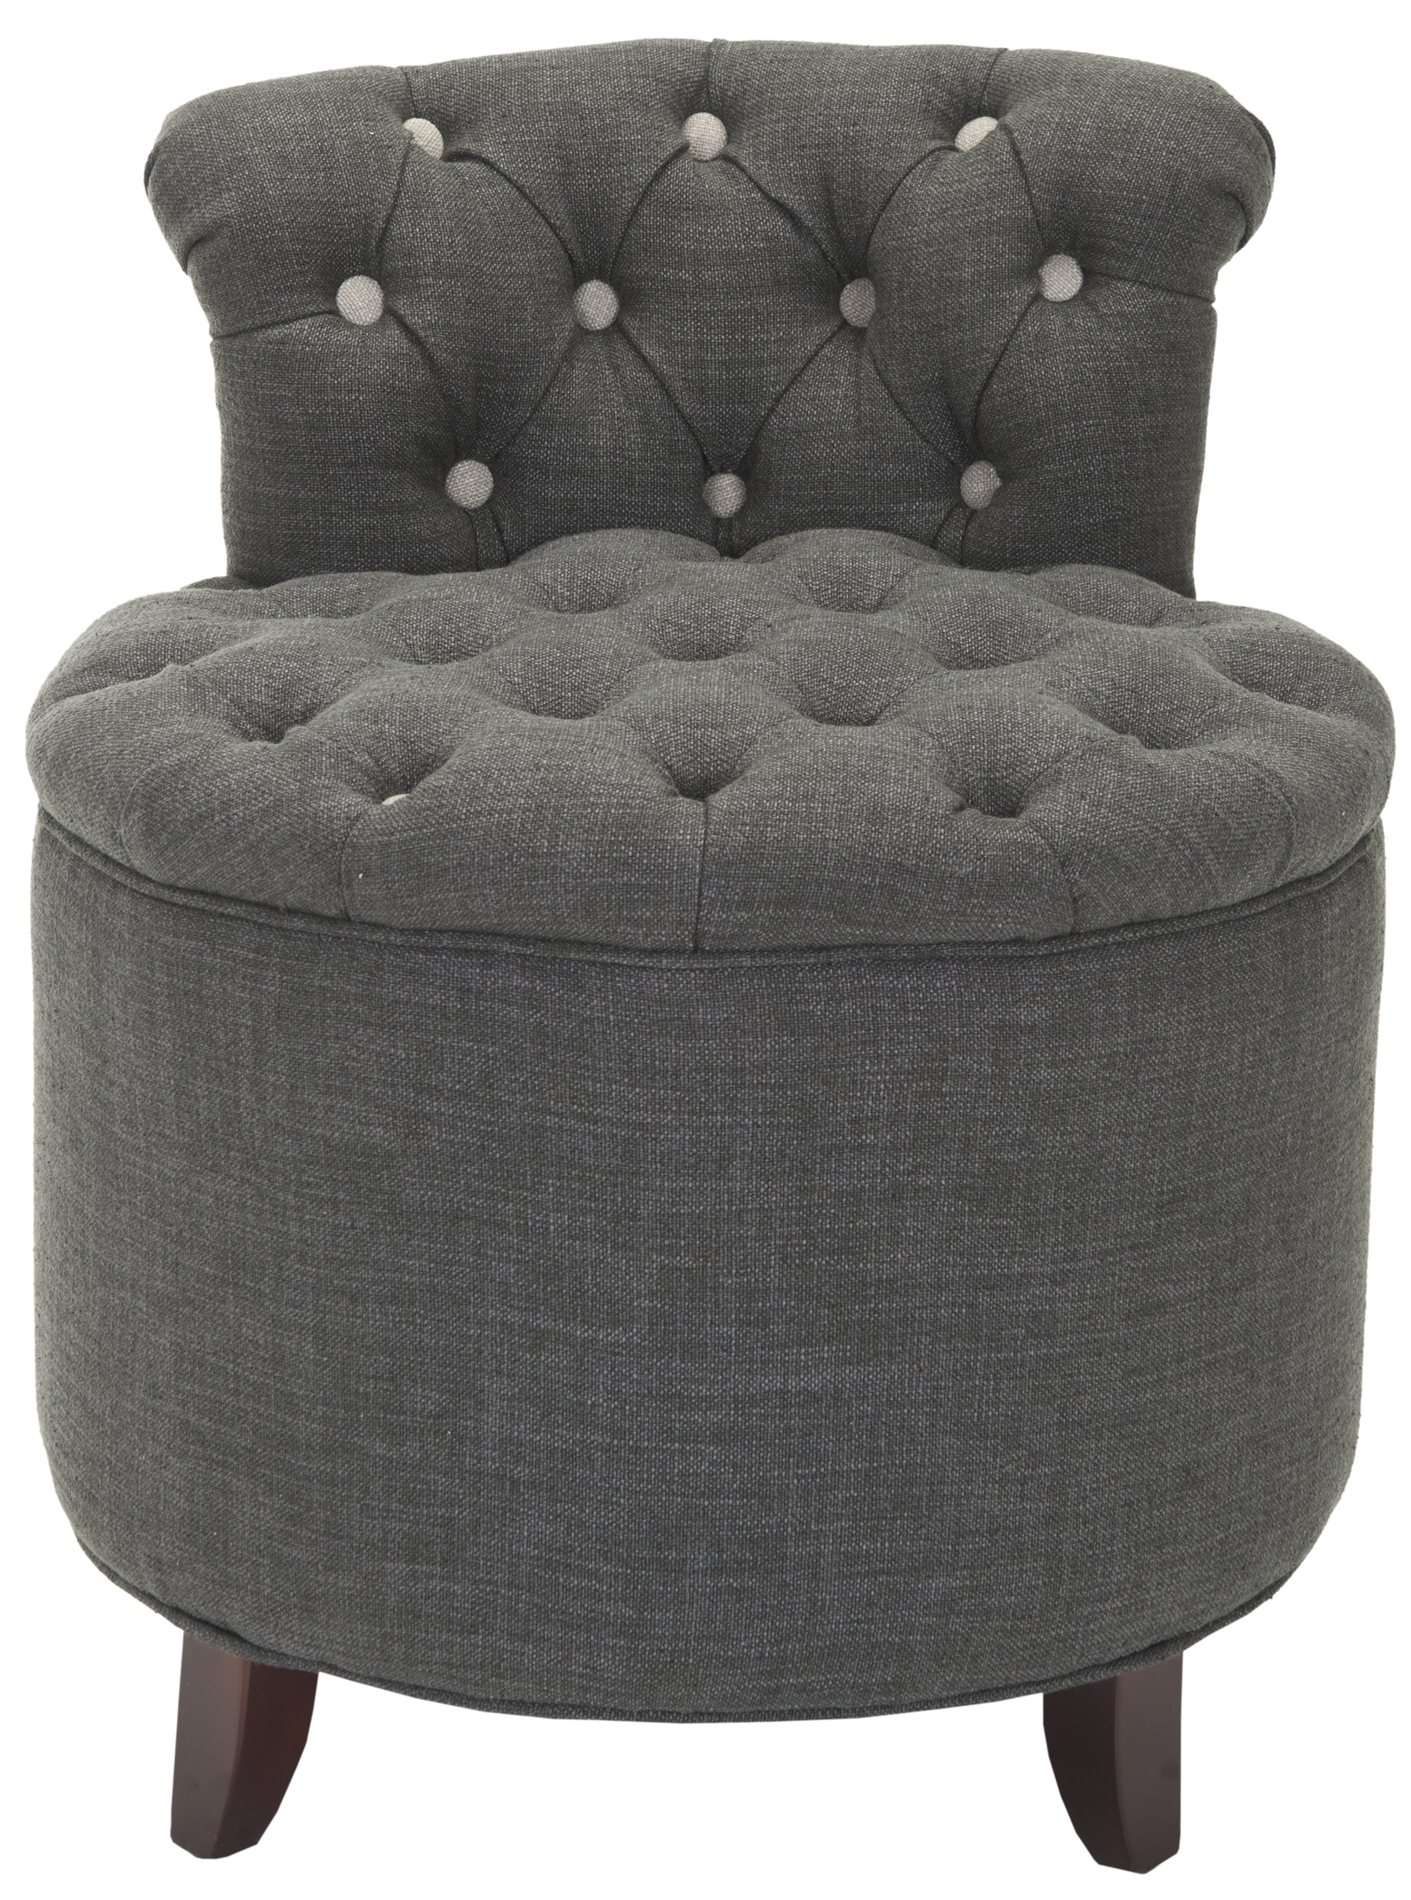 Tufted Vanity Chair Rebecca Tufted Vanity Stool